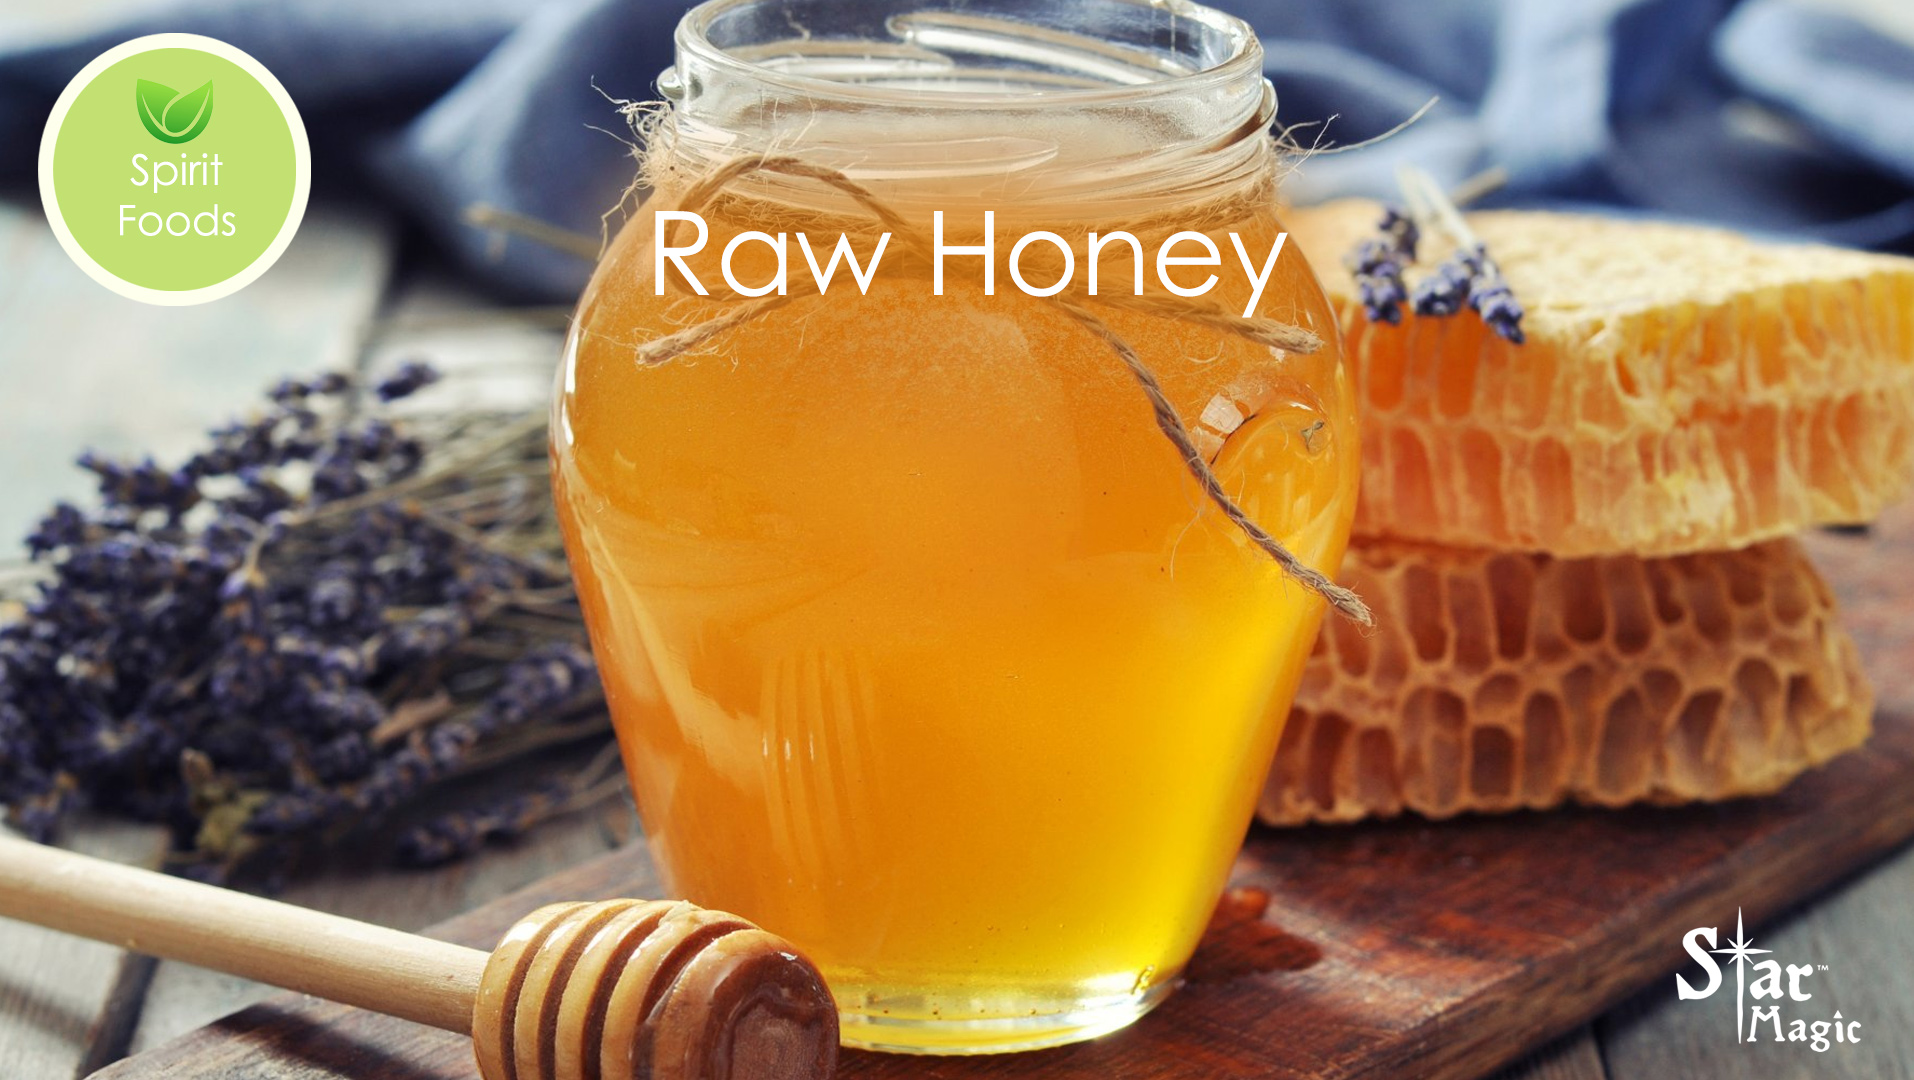 Spirit Food – Raw Honey